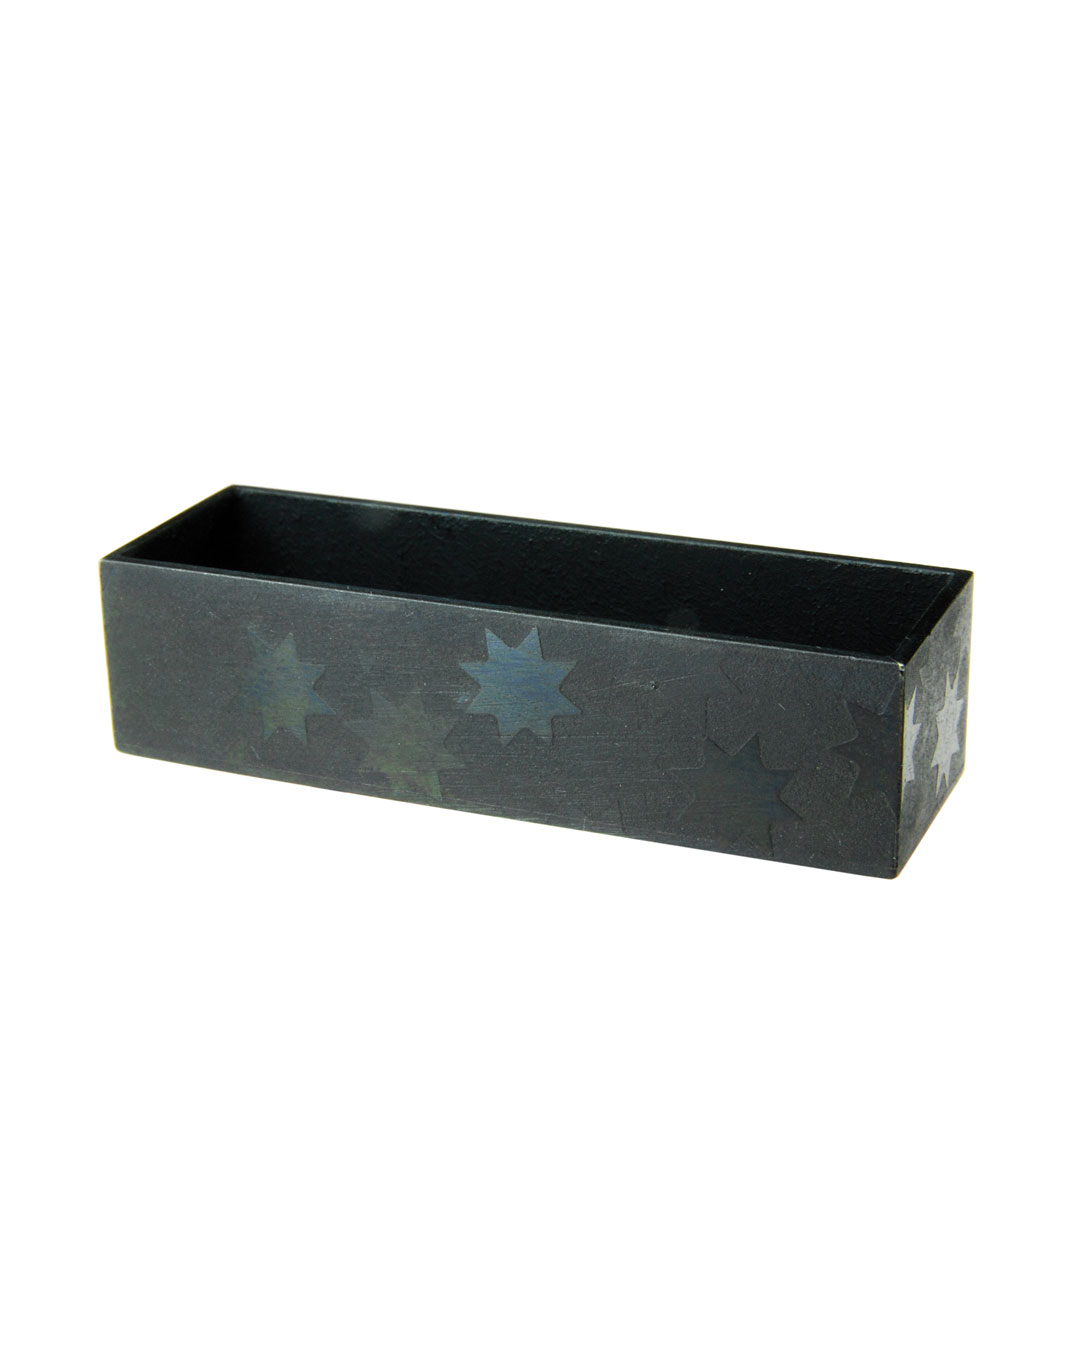 Tore Svensson, Box, 2009, brooch; etched and painted steel, 60 x 20 x 15 mm, €510